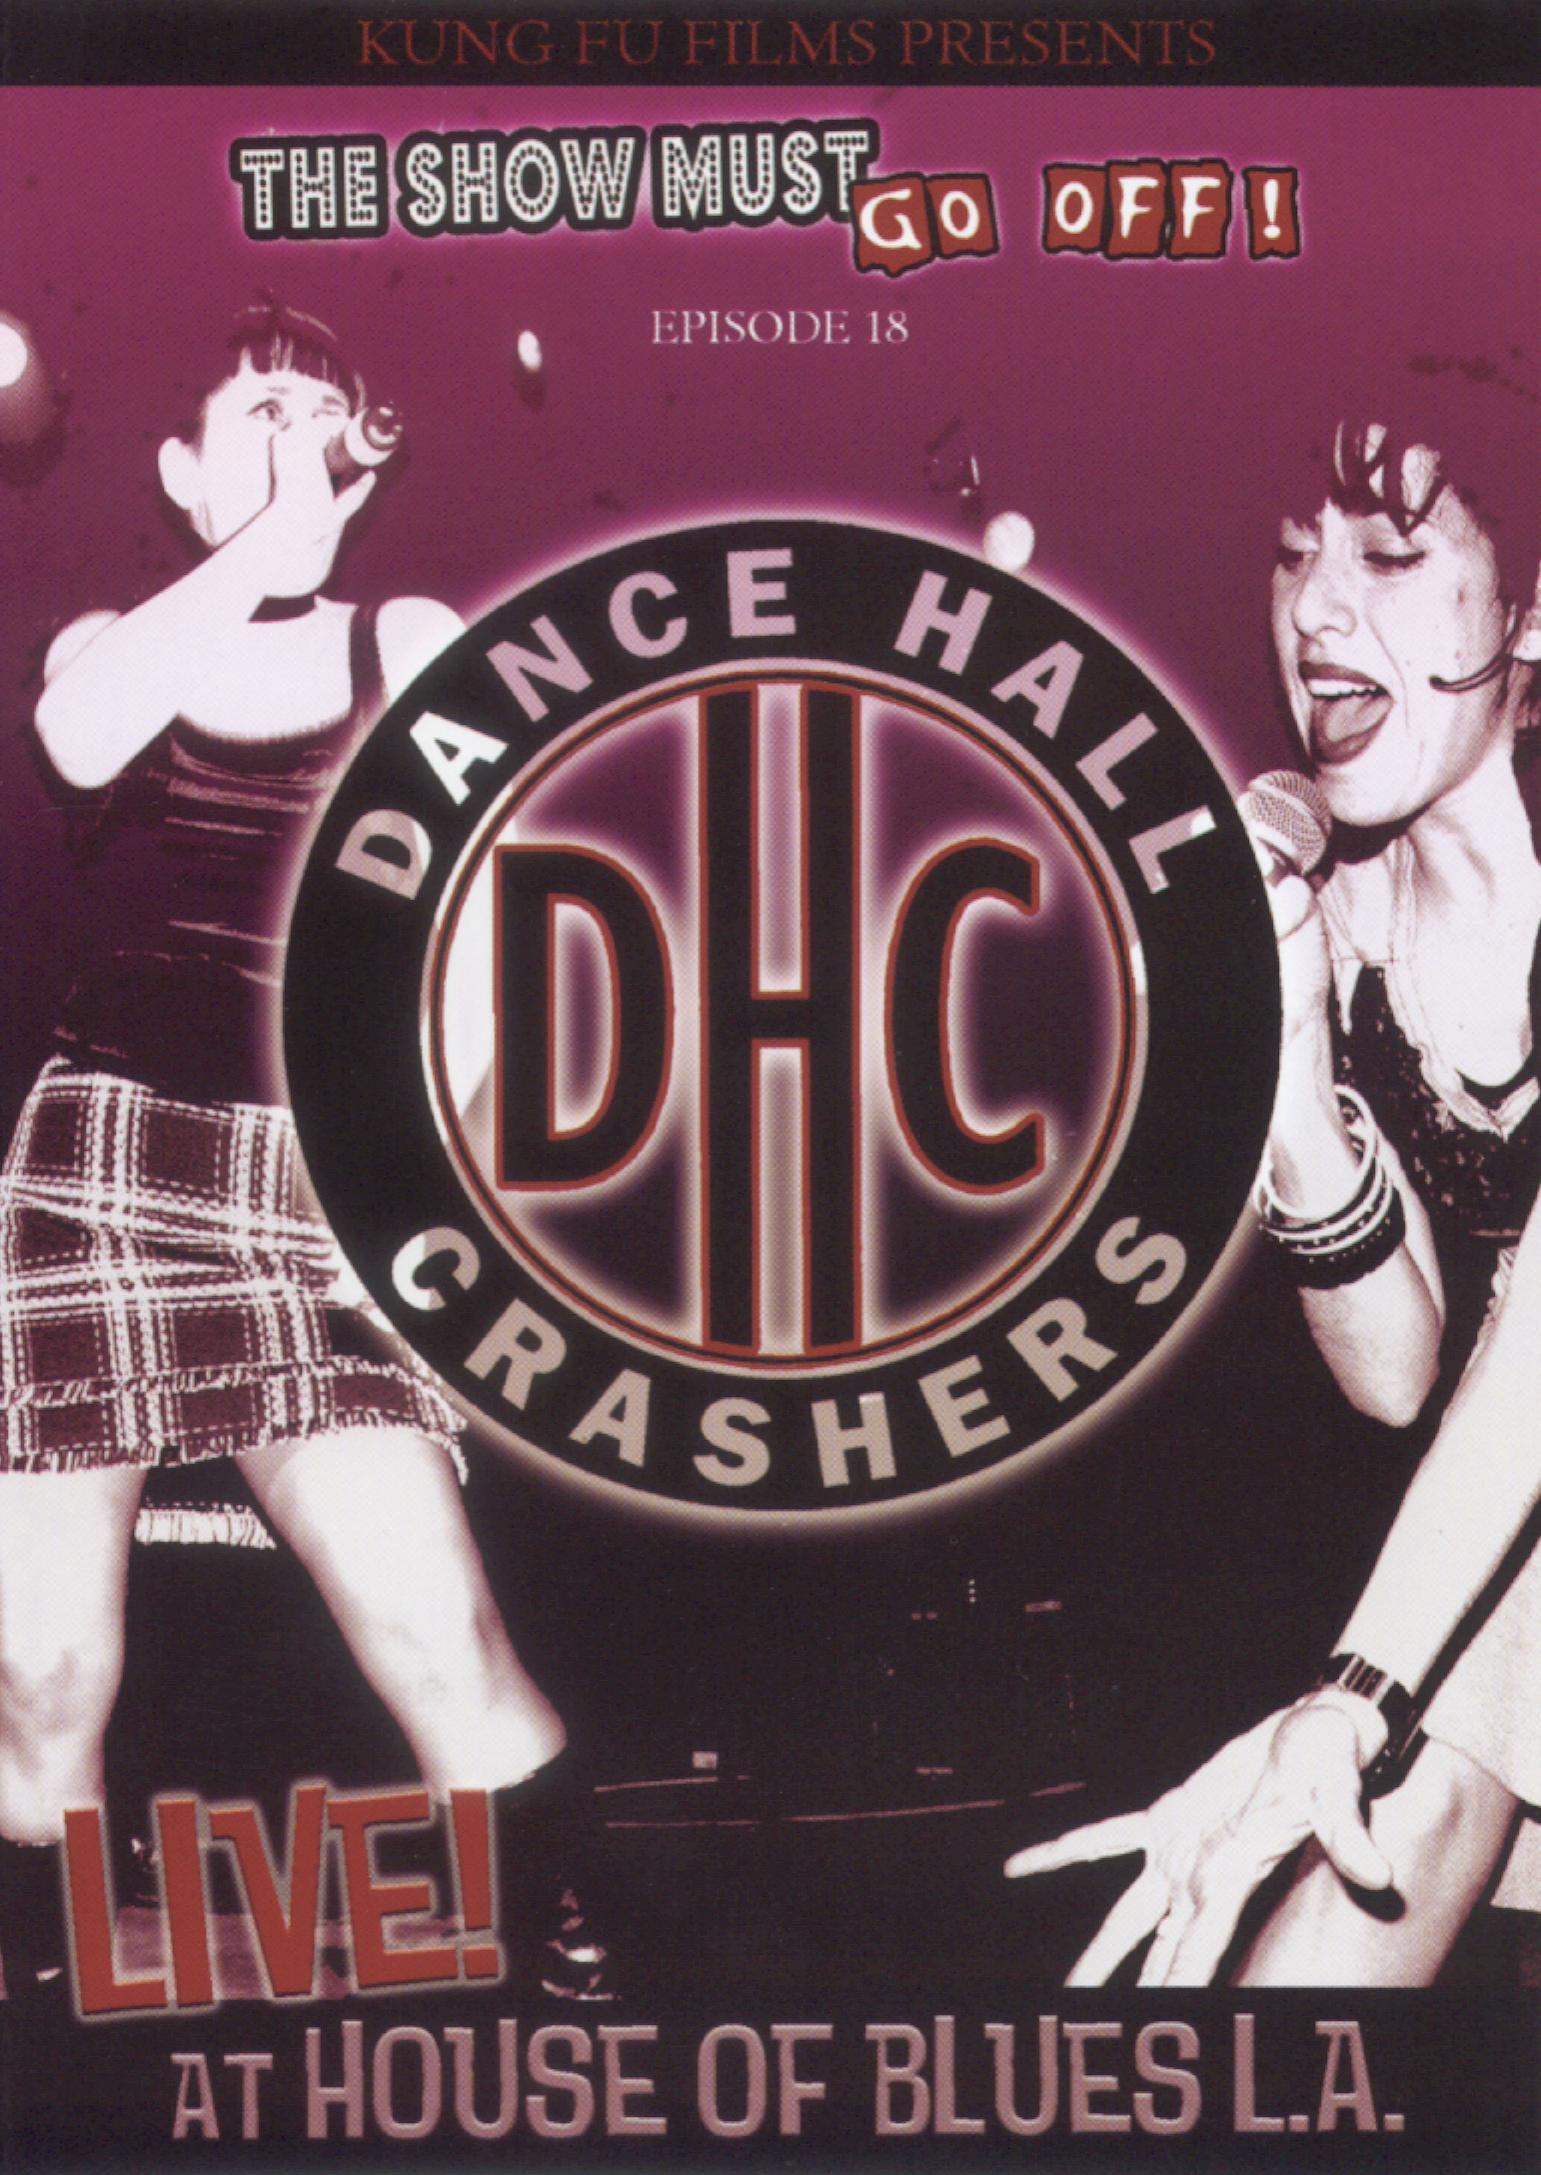 Dance Hall Crashers: Live at the House of Blues L.A.